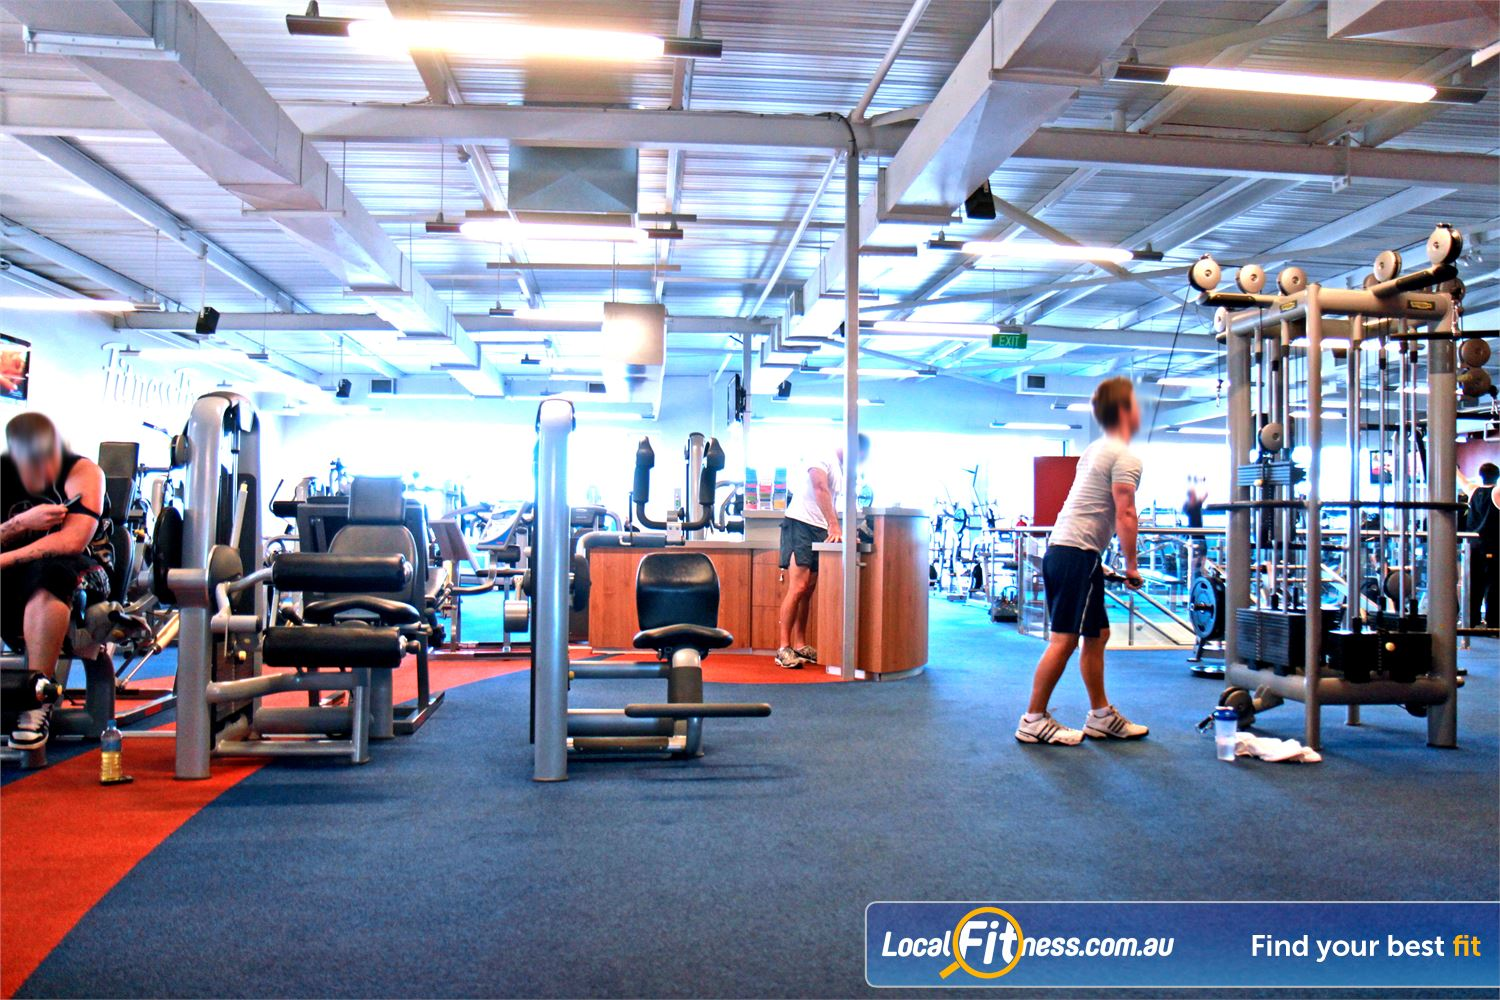 Goodlife Health Clubs Near Osborne Park Goodlife Innaloo provides 2 levels of fitness under one roof.